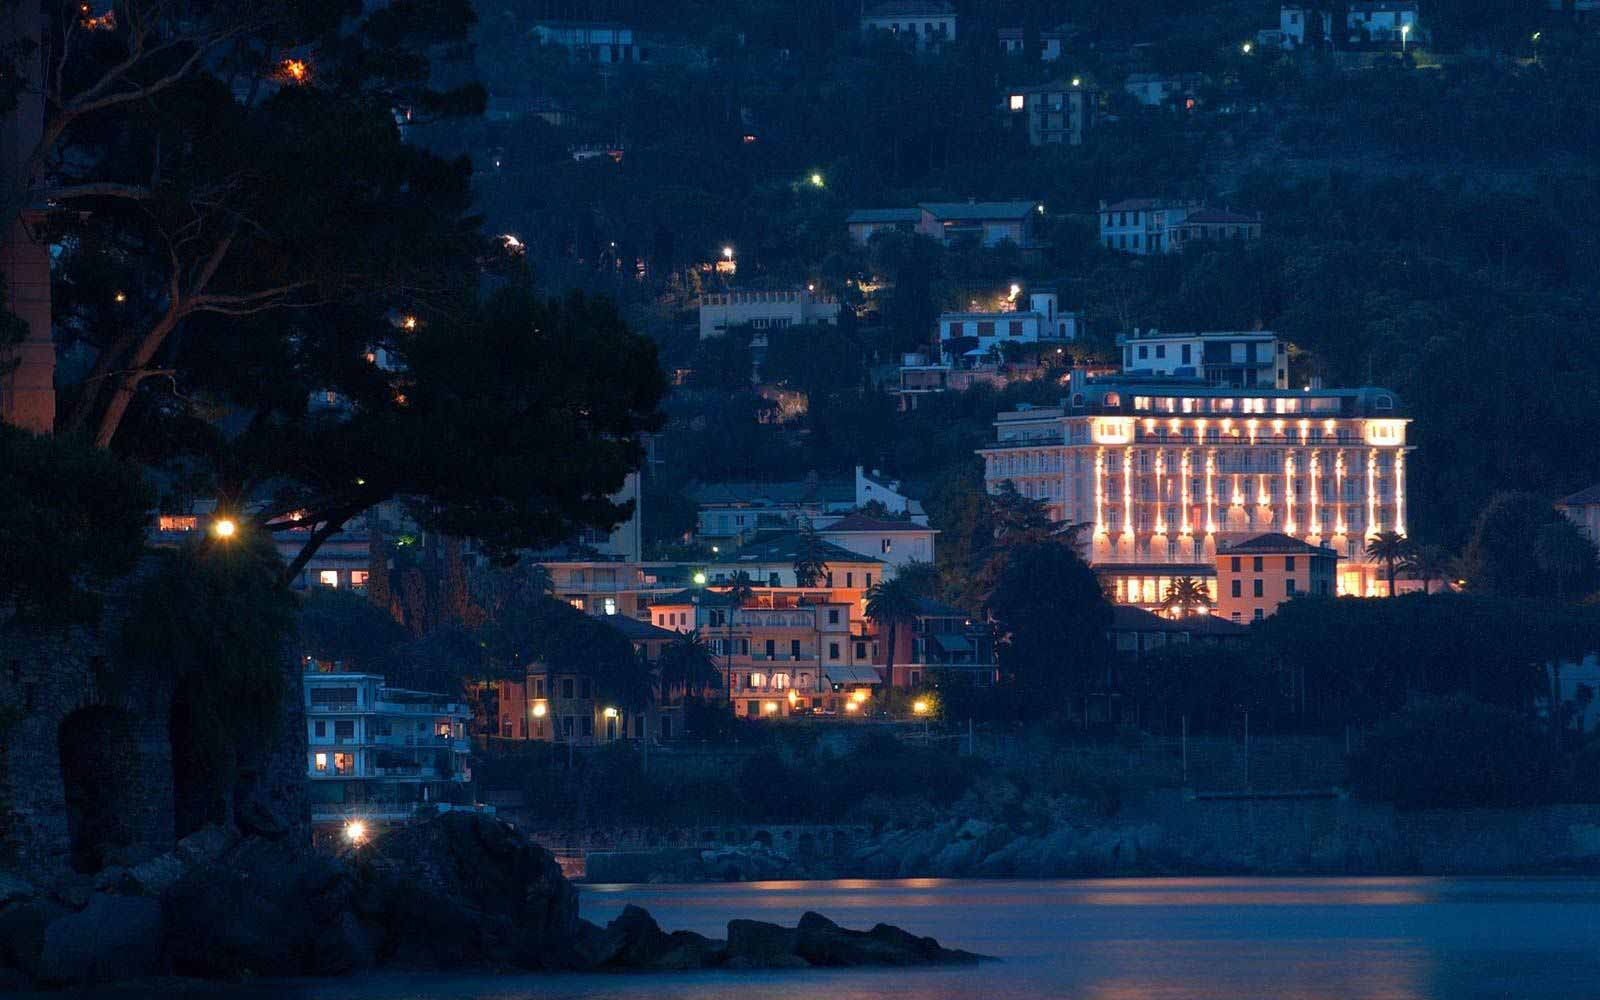 Grand Hotel Bristol at night